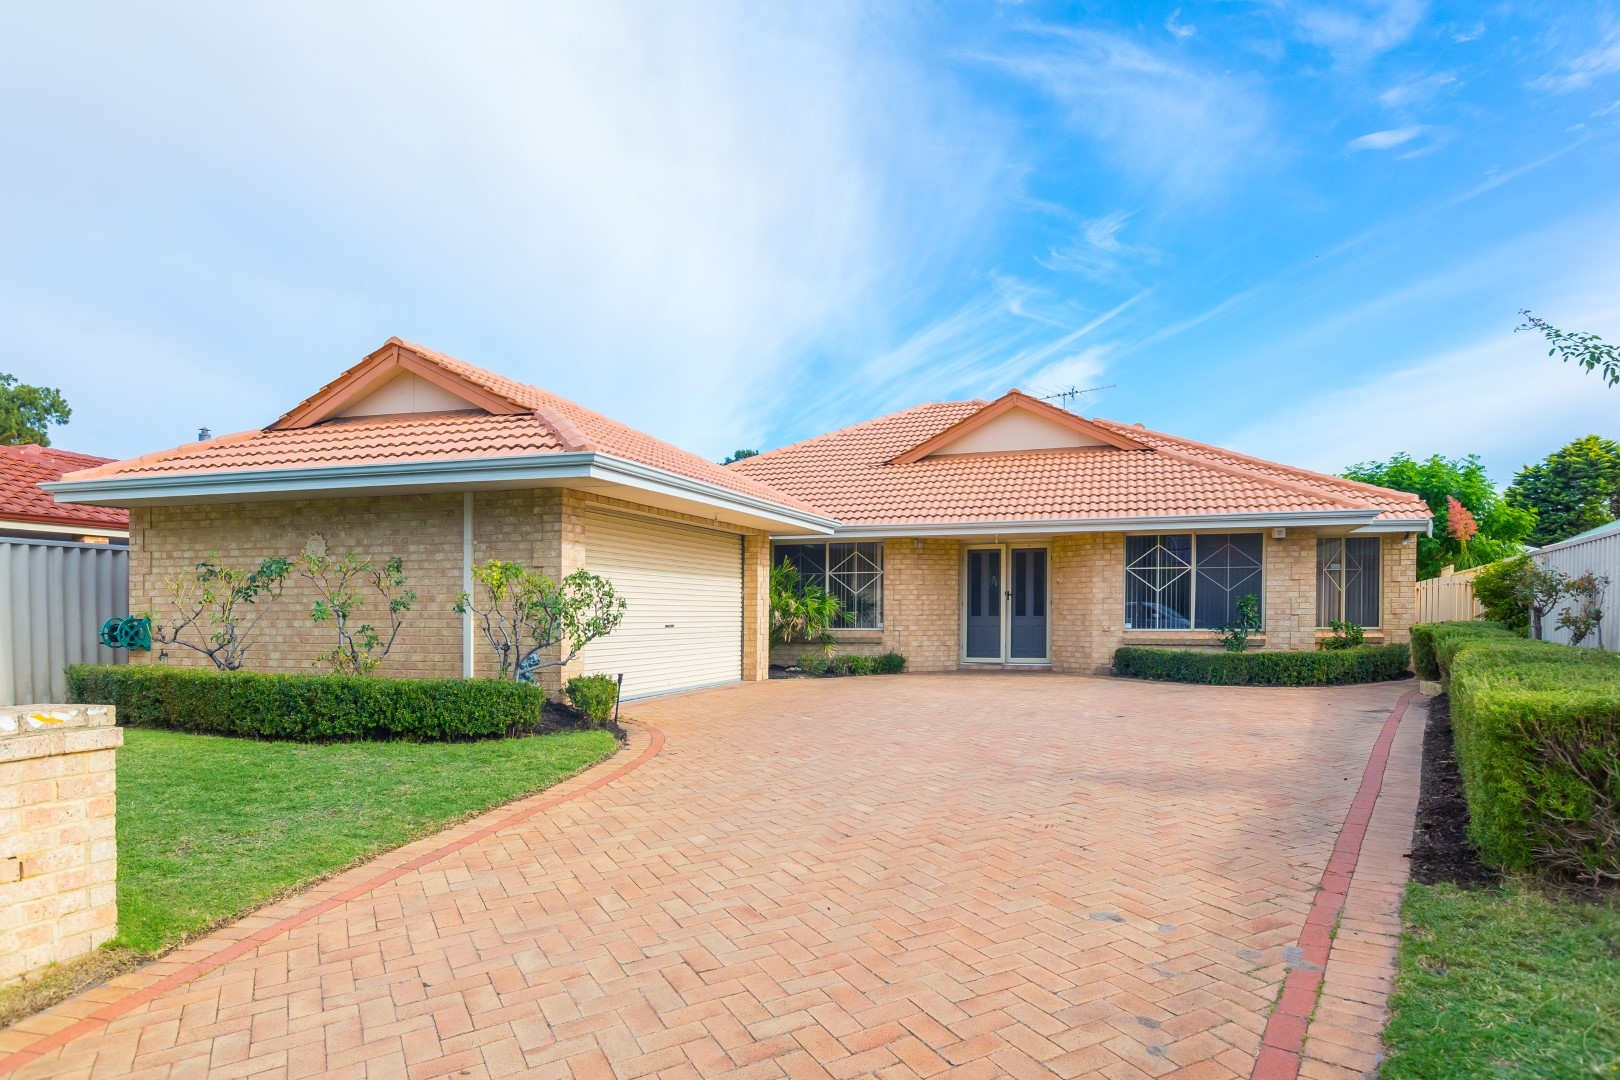 Property for sale in CANNING VALE, 52 Waratah Boulevard : Attree Real Estate